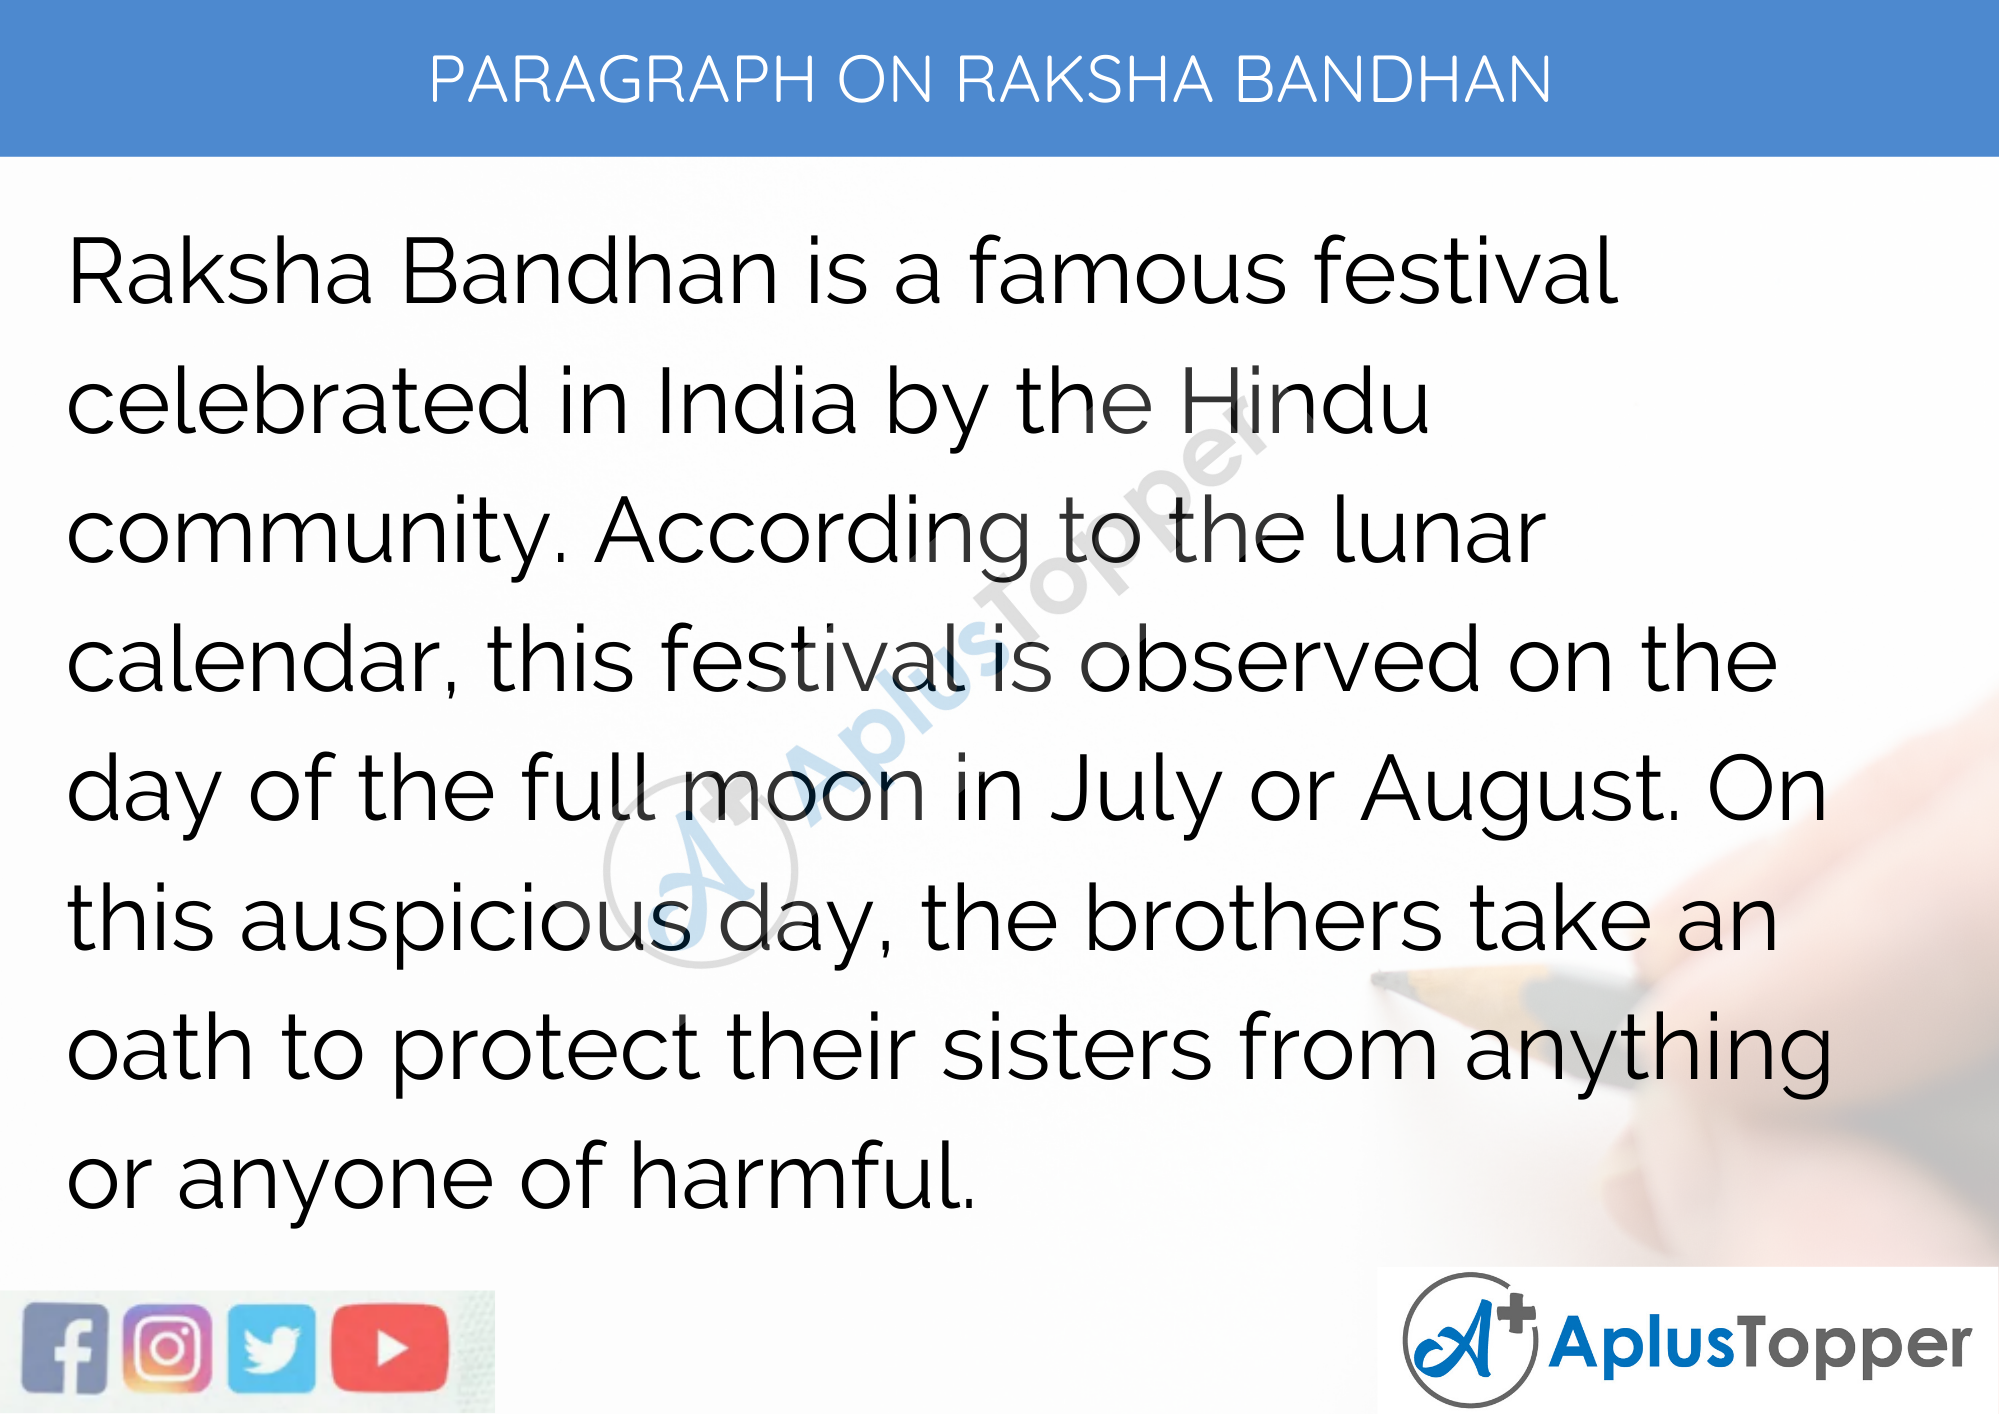 Paragraph on Raksha Bandhan - 250 to 300 Words for Classes 9, 10, and 11, 12 and Competitive Exams